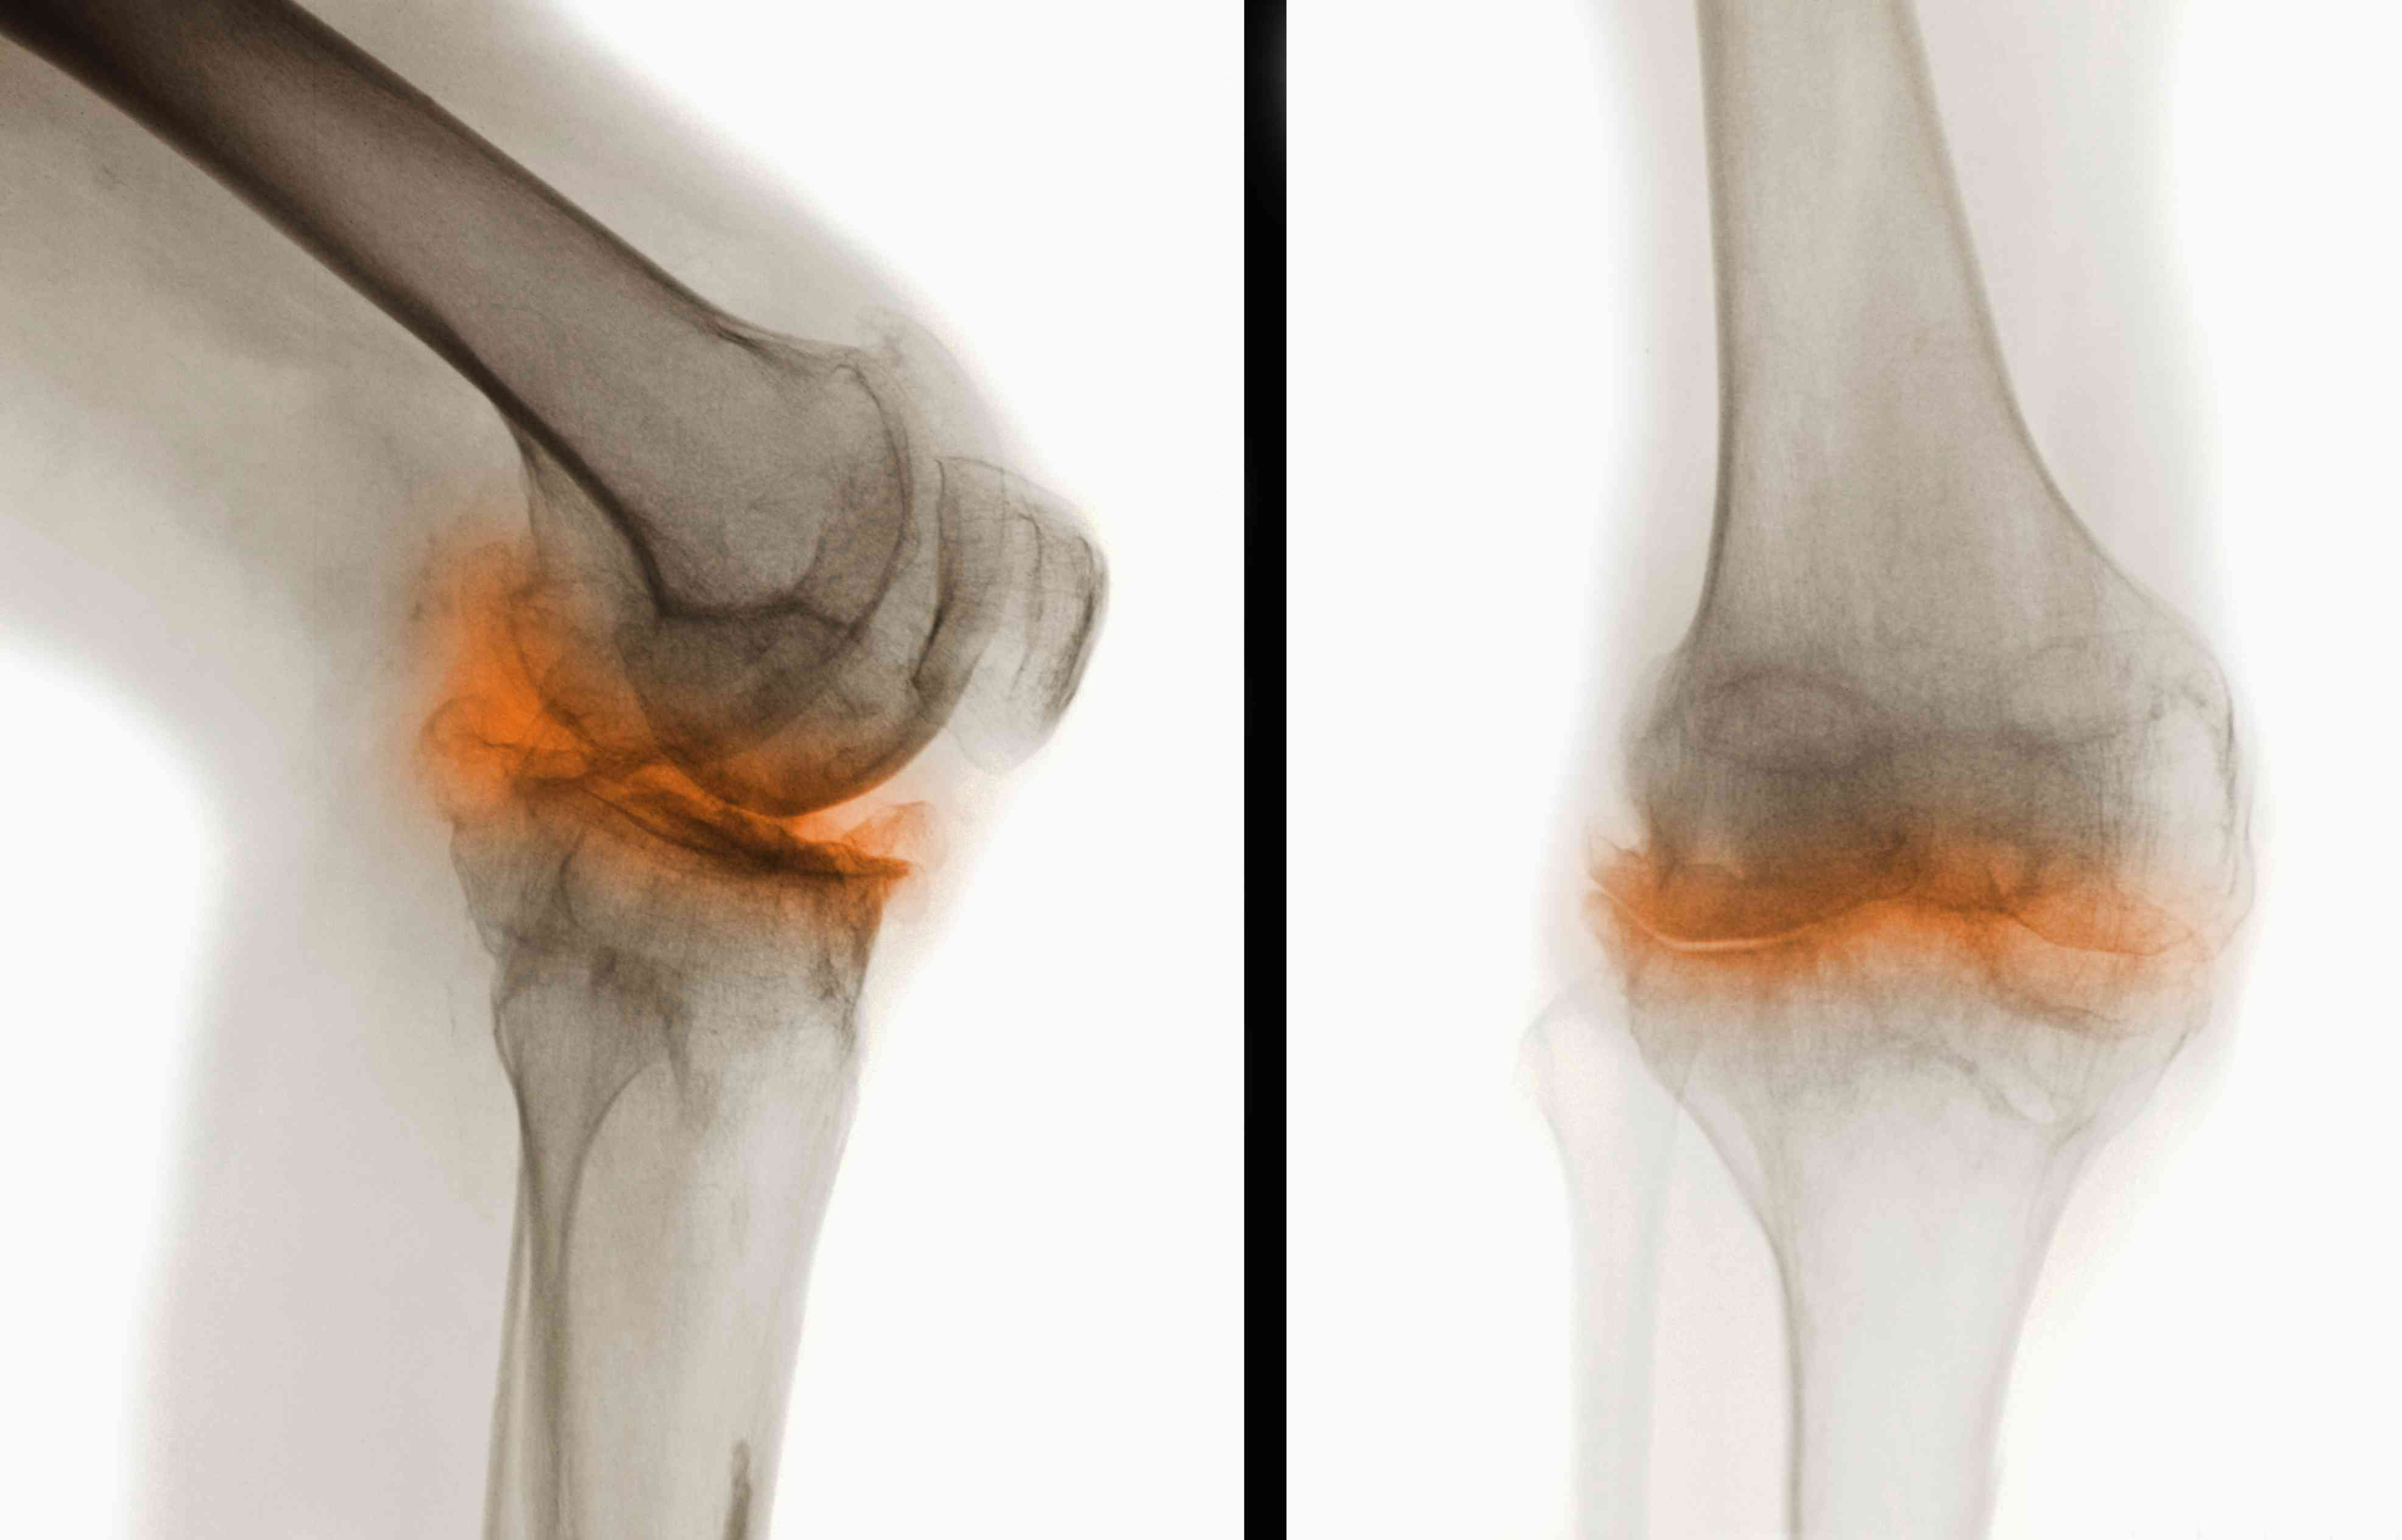 An X-ray of a knee shows damage from arthritis.